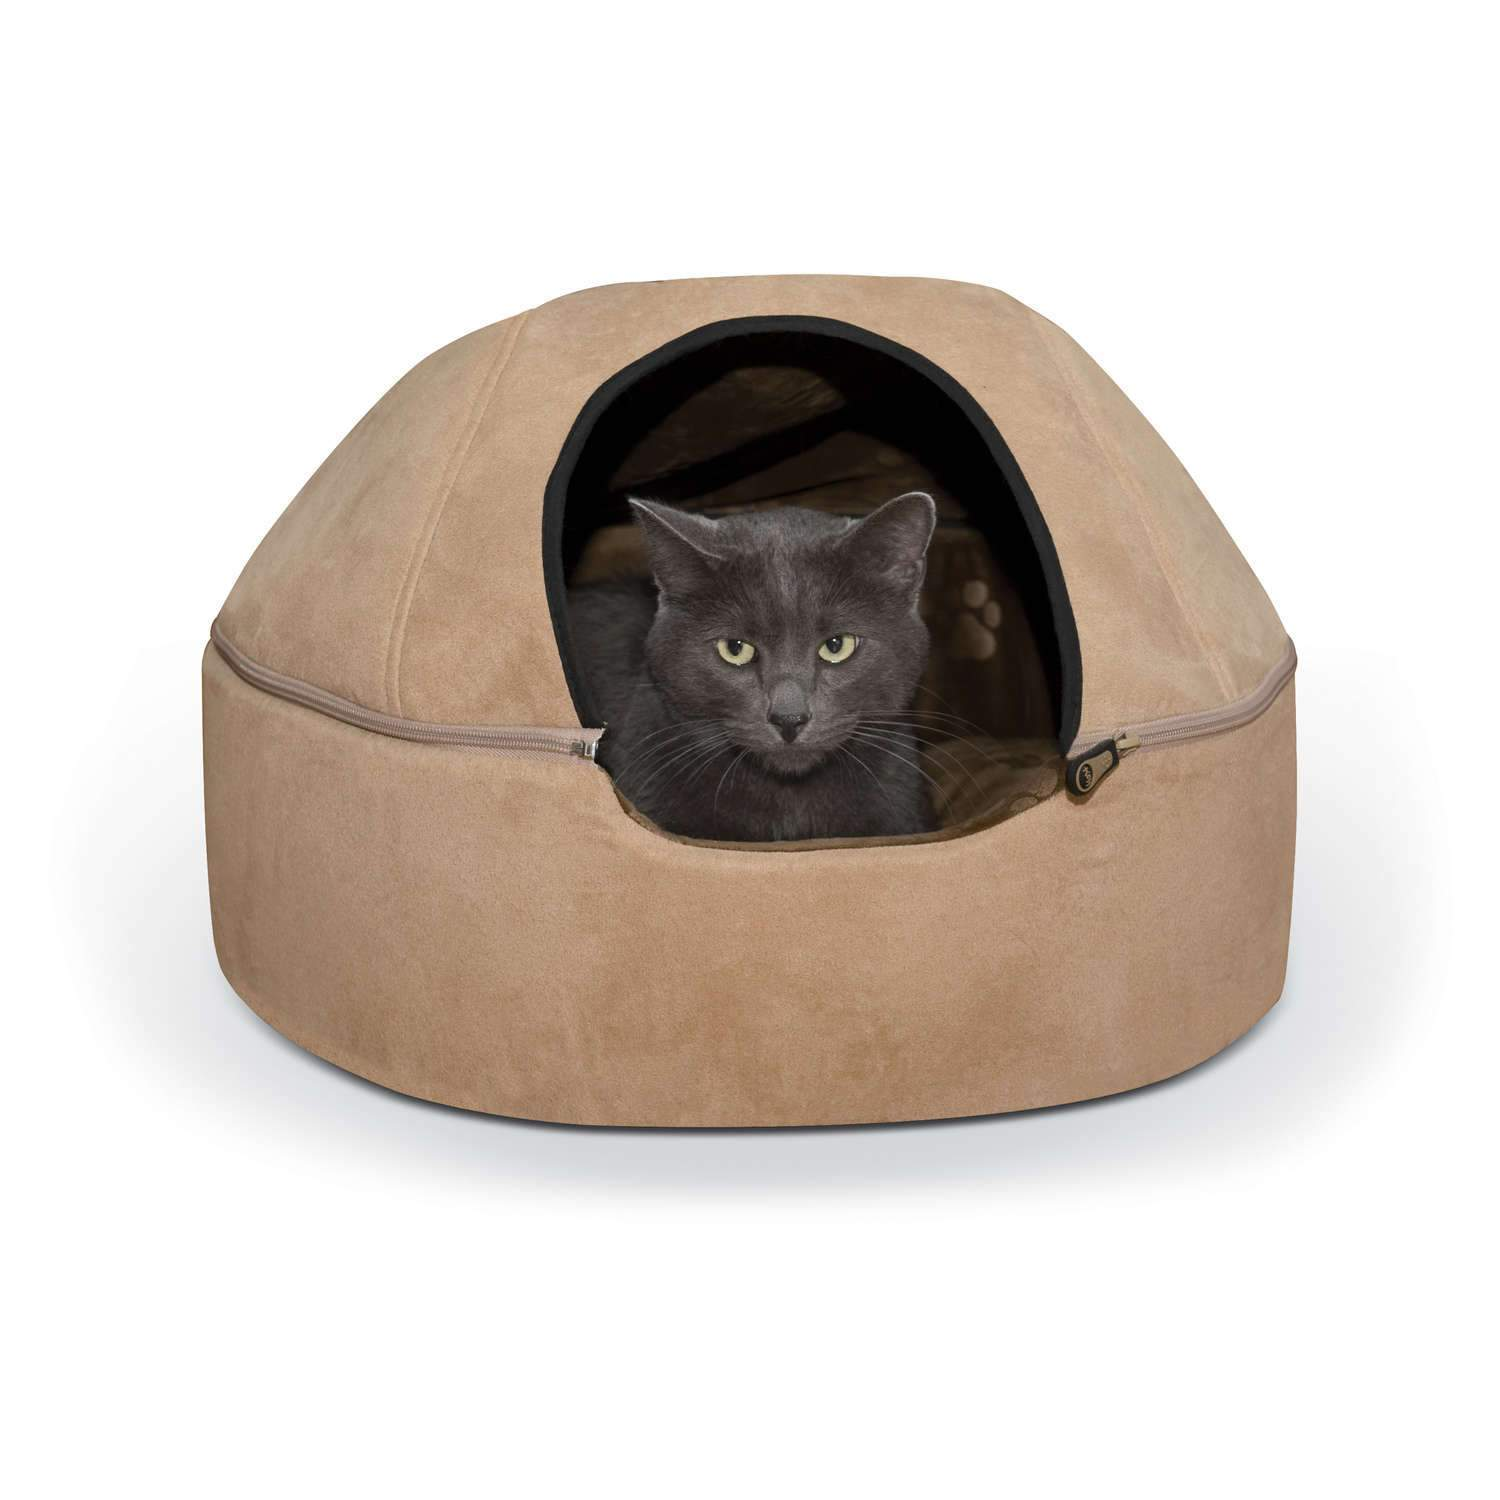 K&H Manufacturing Kh3896 Kitty Dome Bed Unheated